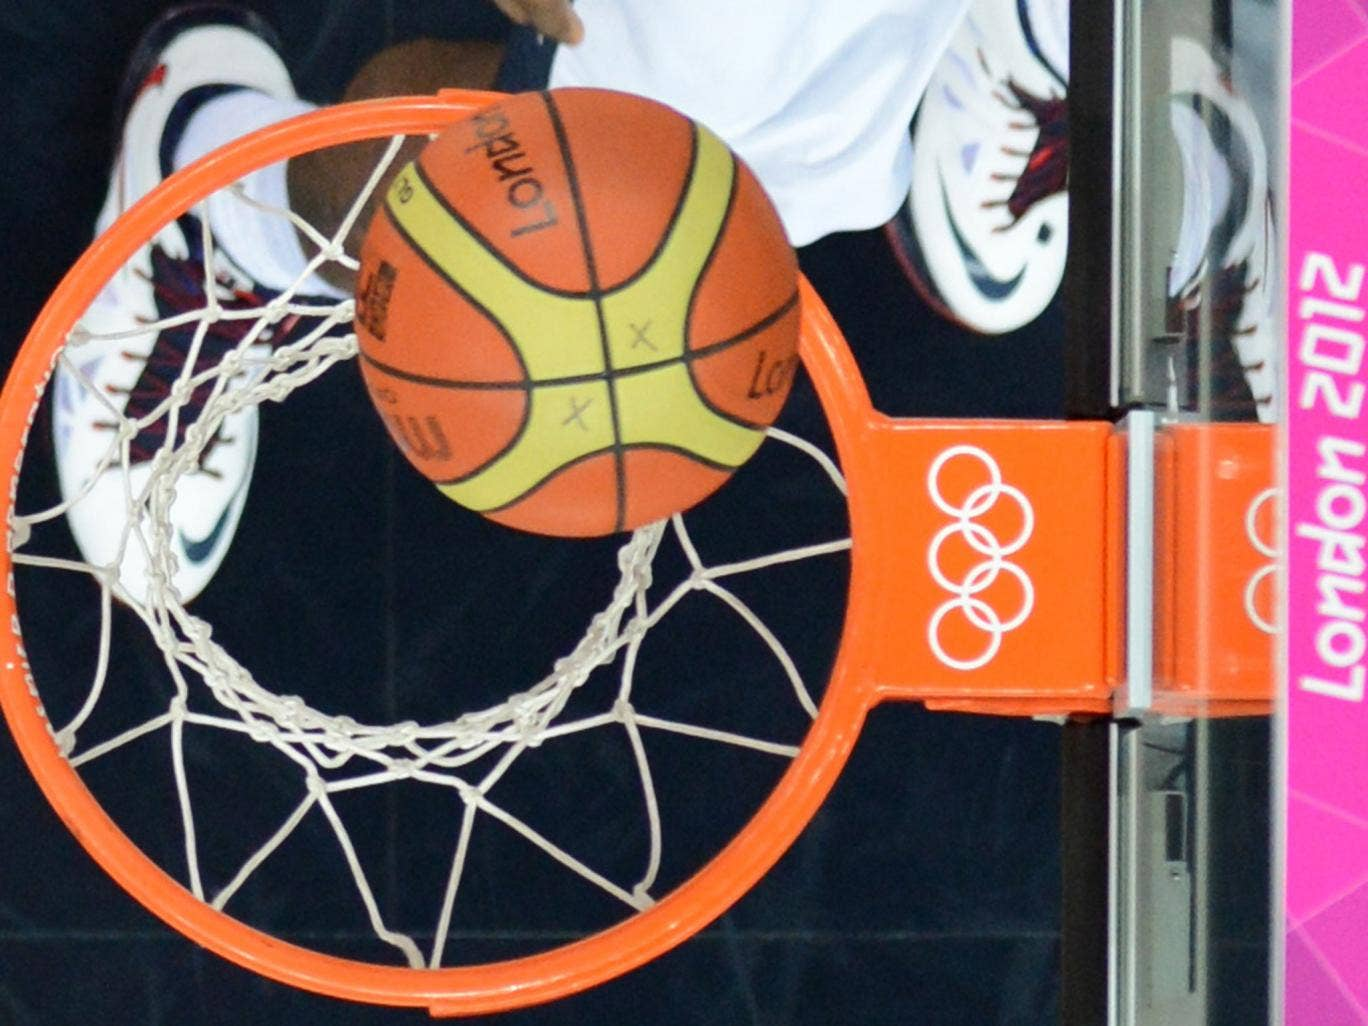 Basketball at London 2012